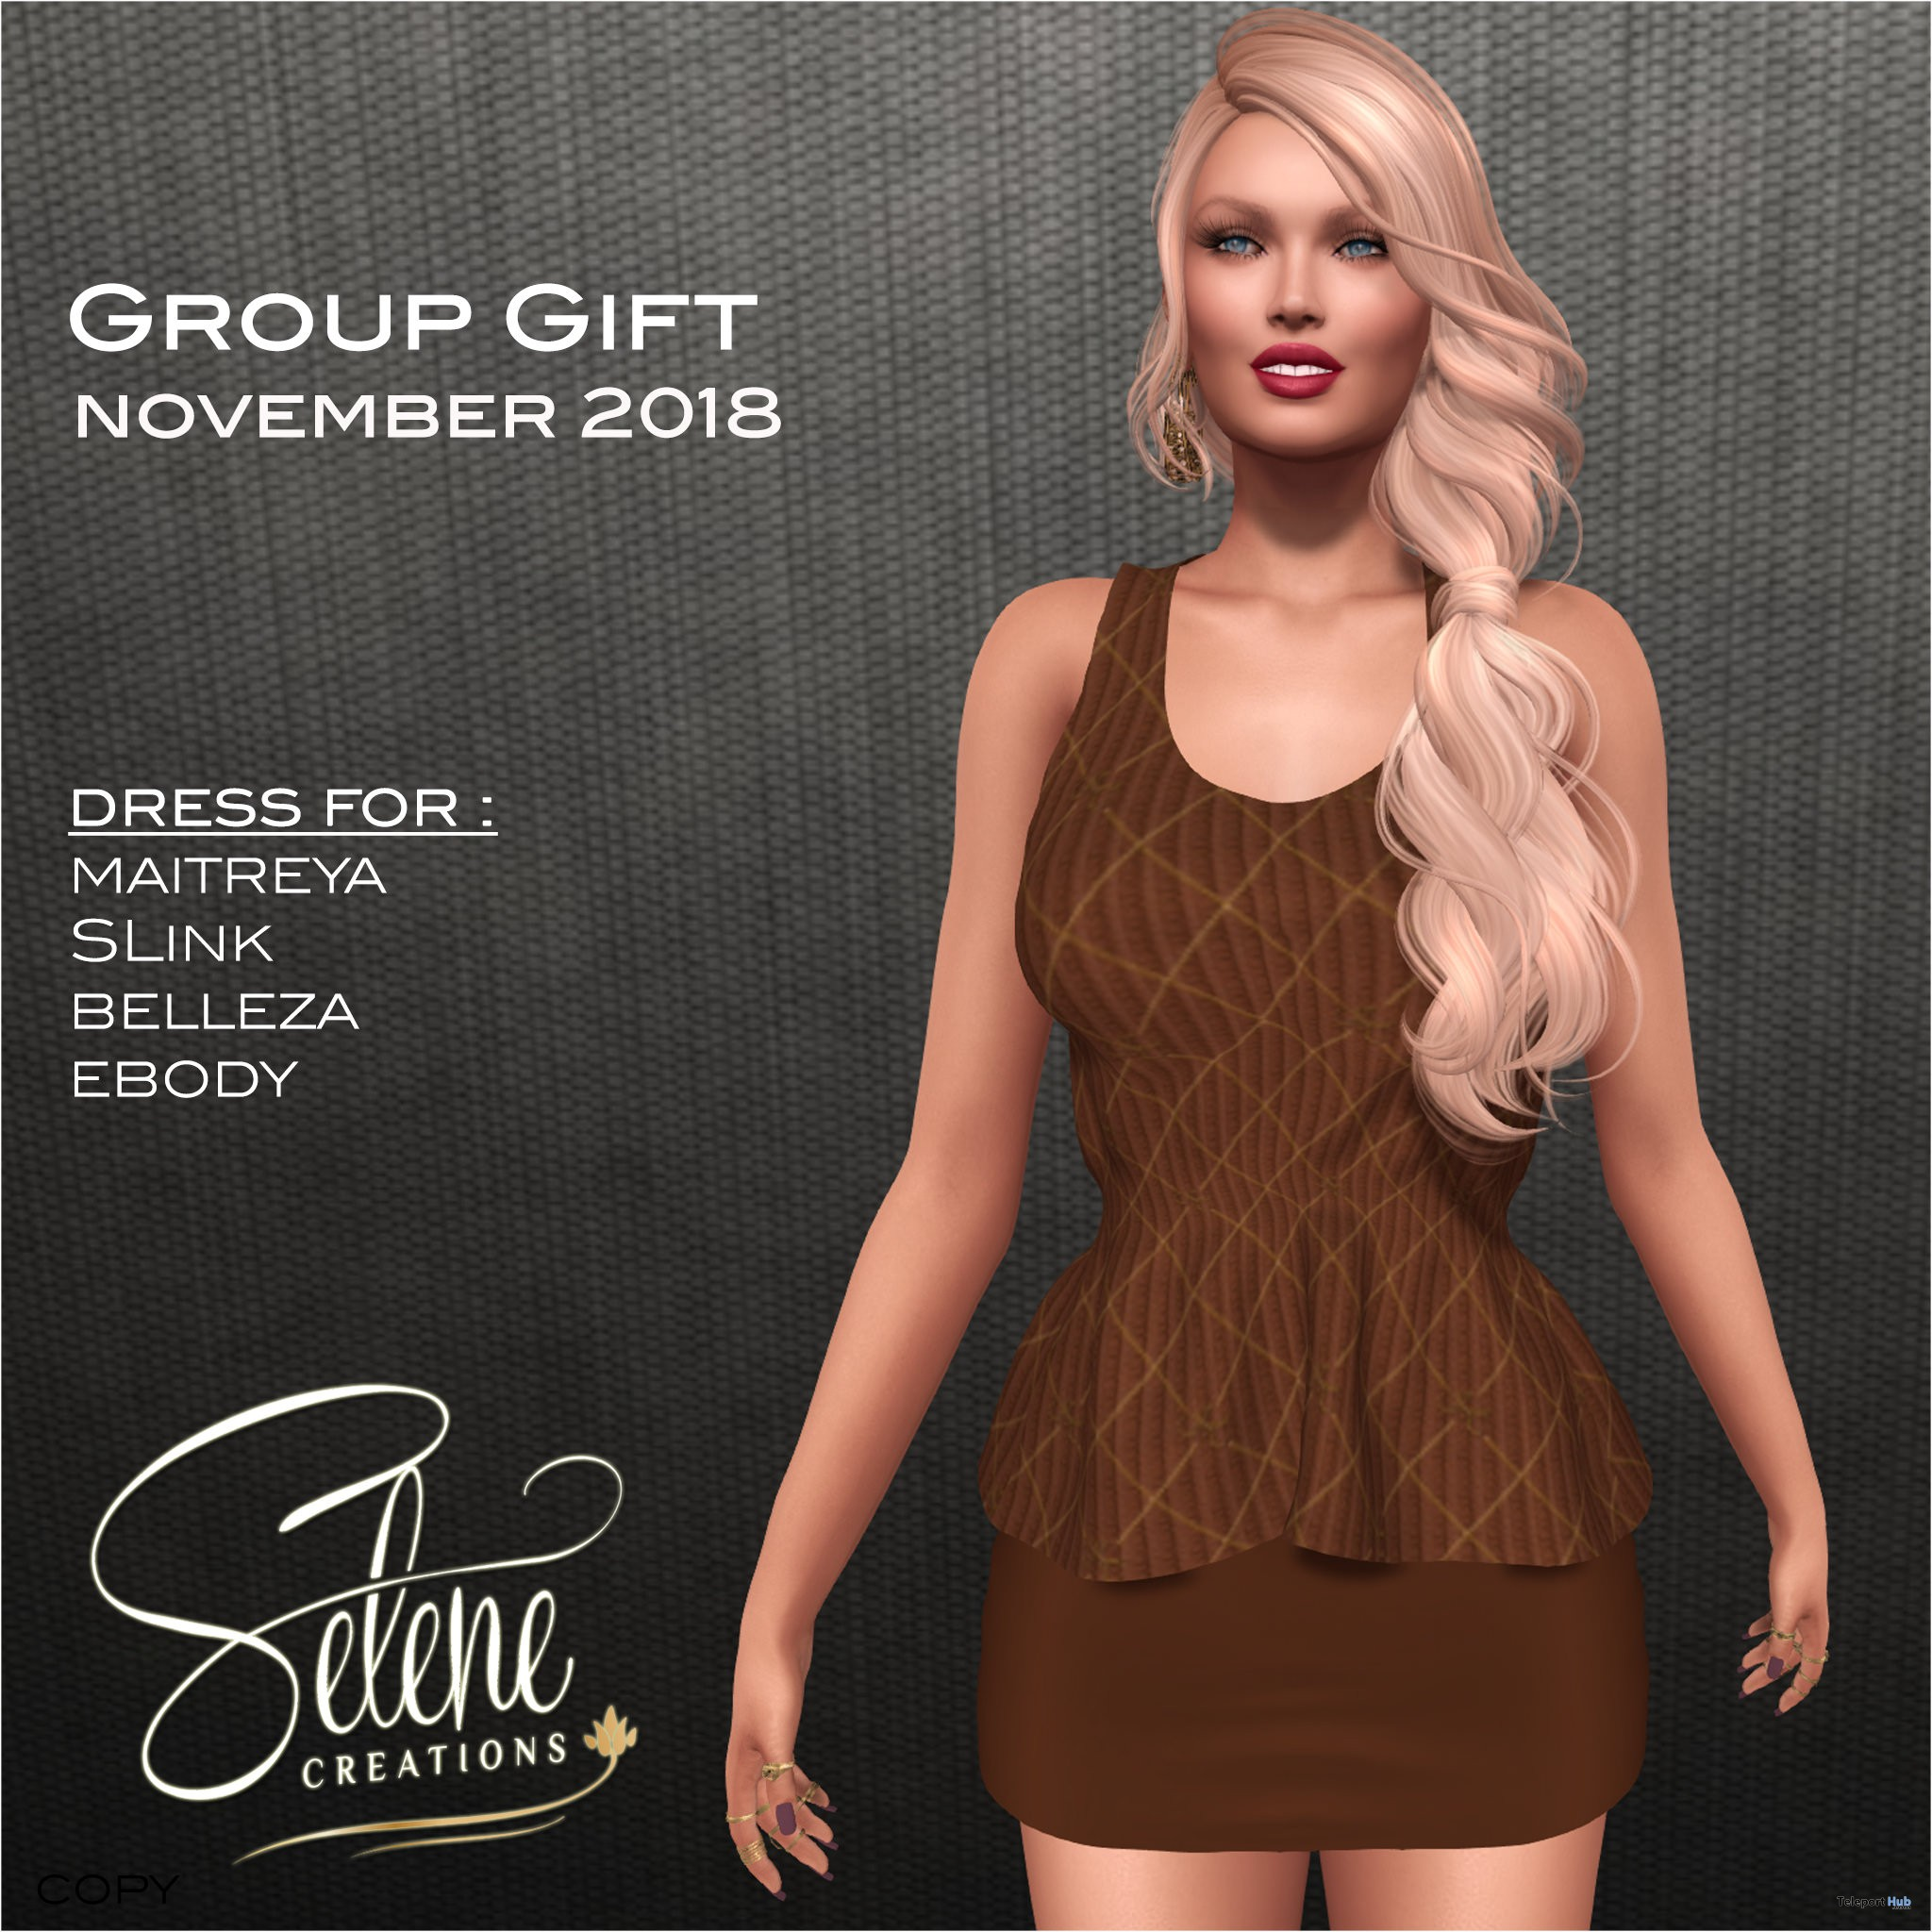 Brown Dress November 2018 Group Gift by Selene Creations - Teleport Hub - teleporthub.com